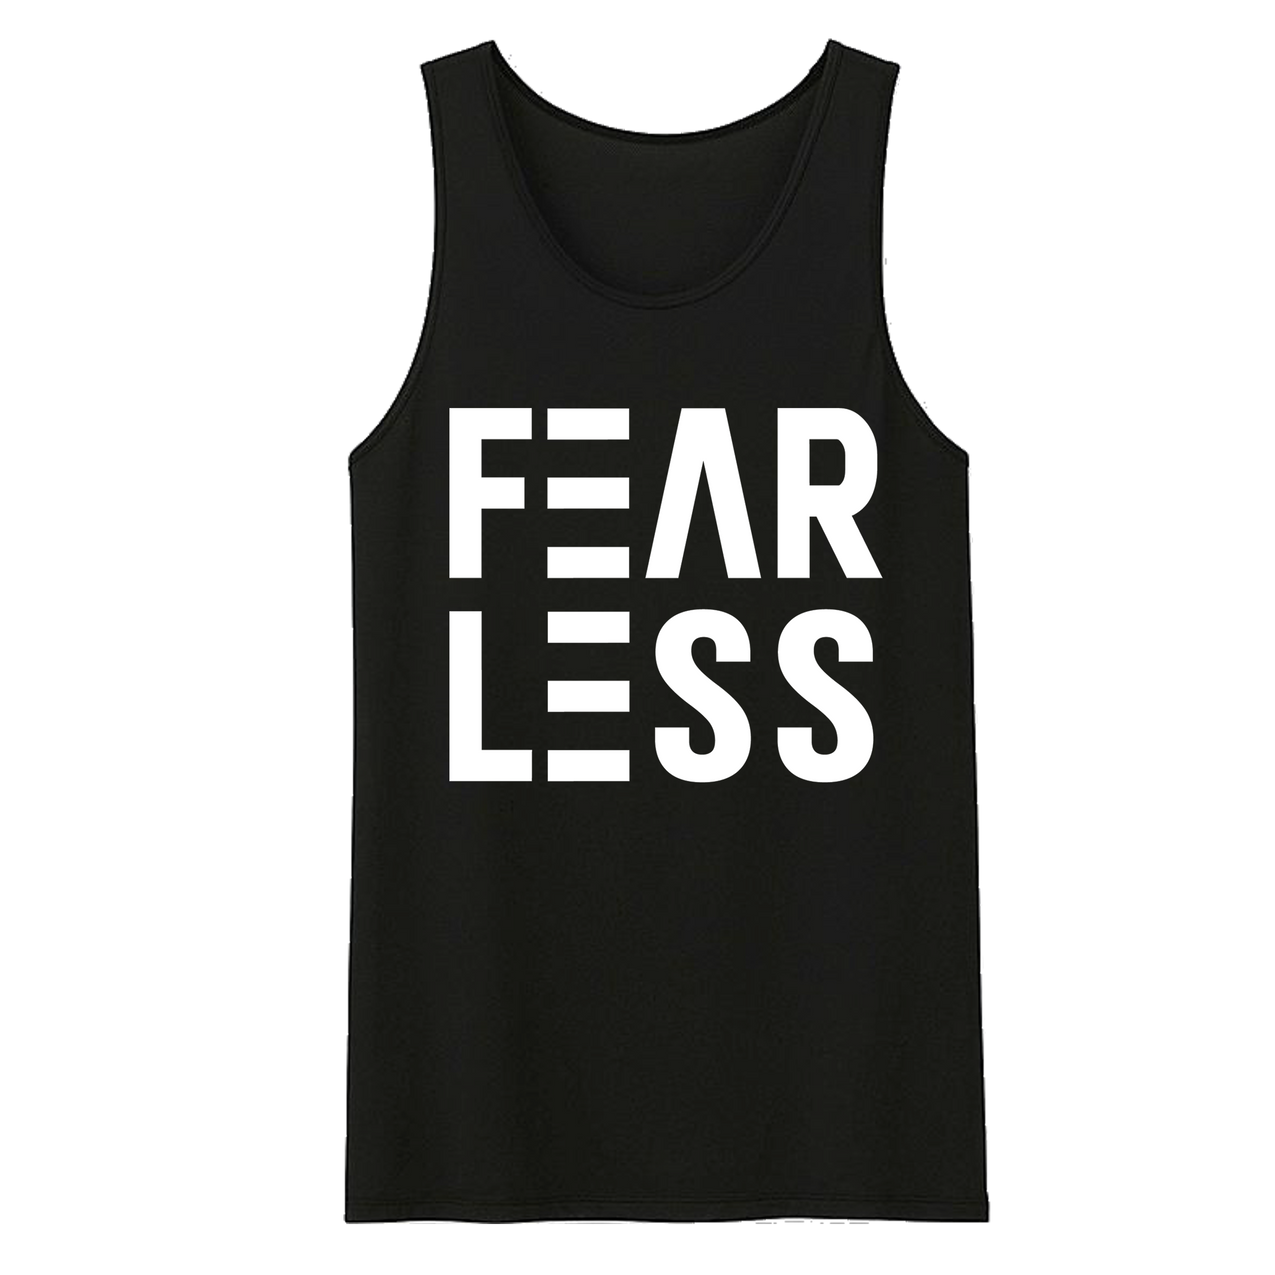 Fearless (M)